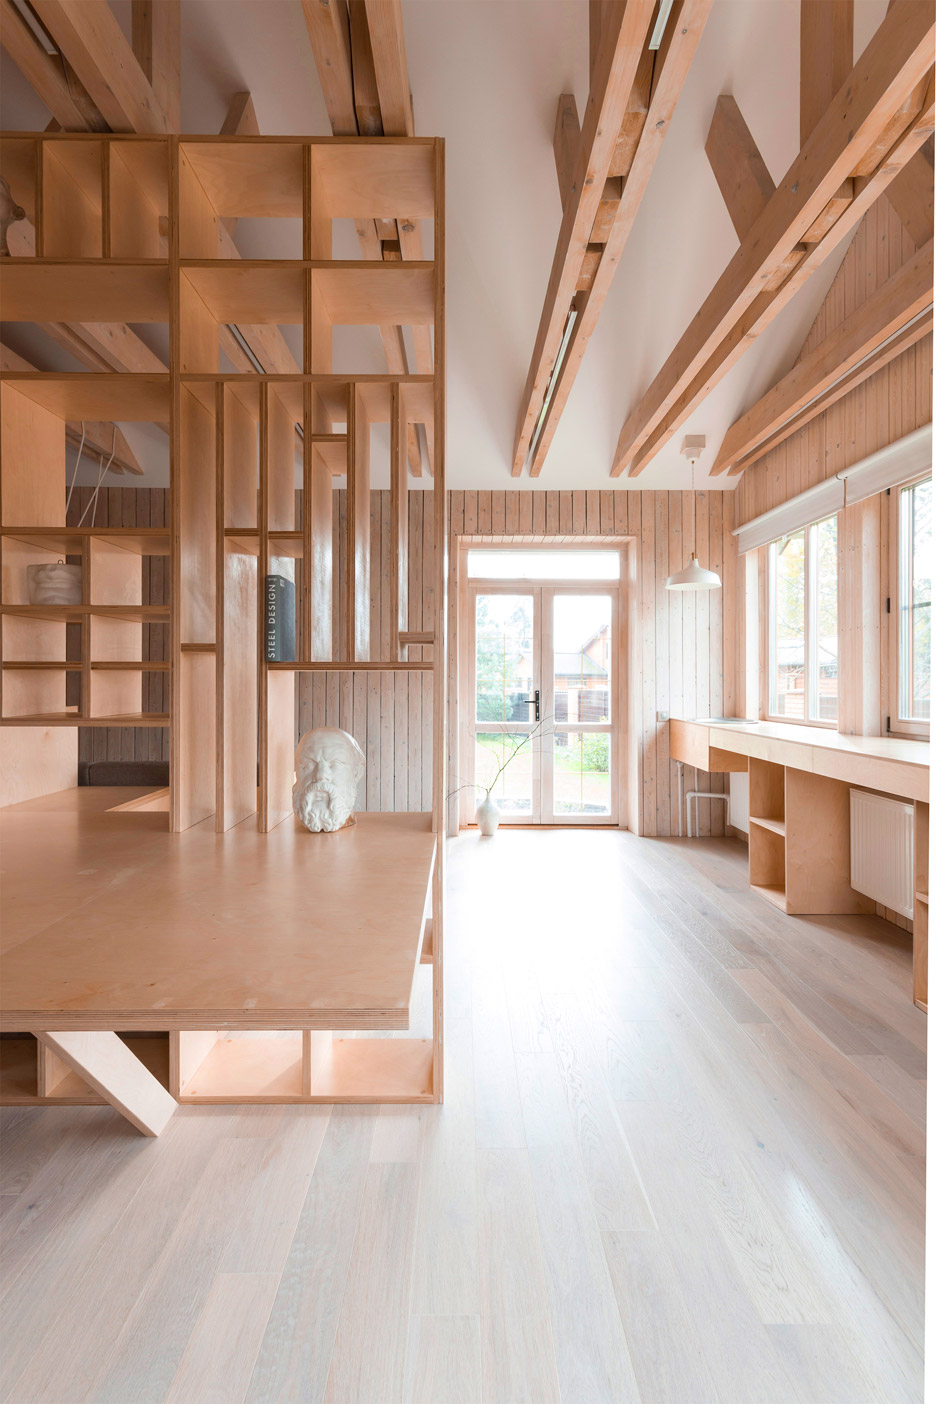 Plywood Artist S Studio By Ruetemple Combines Areas For